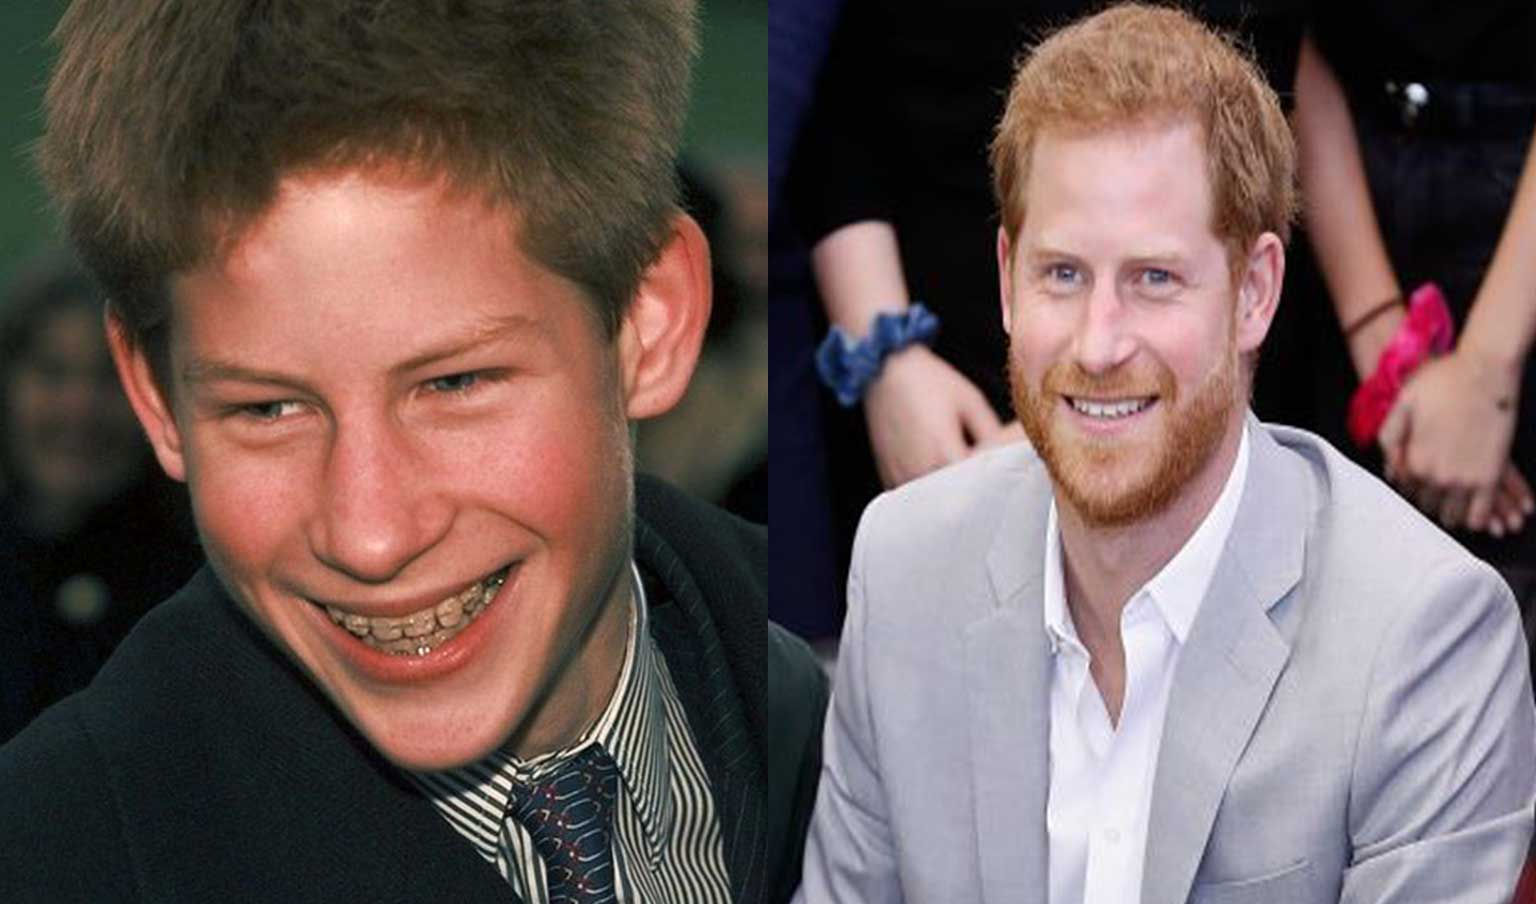 Prince Harry before and after orthodontic treatment